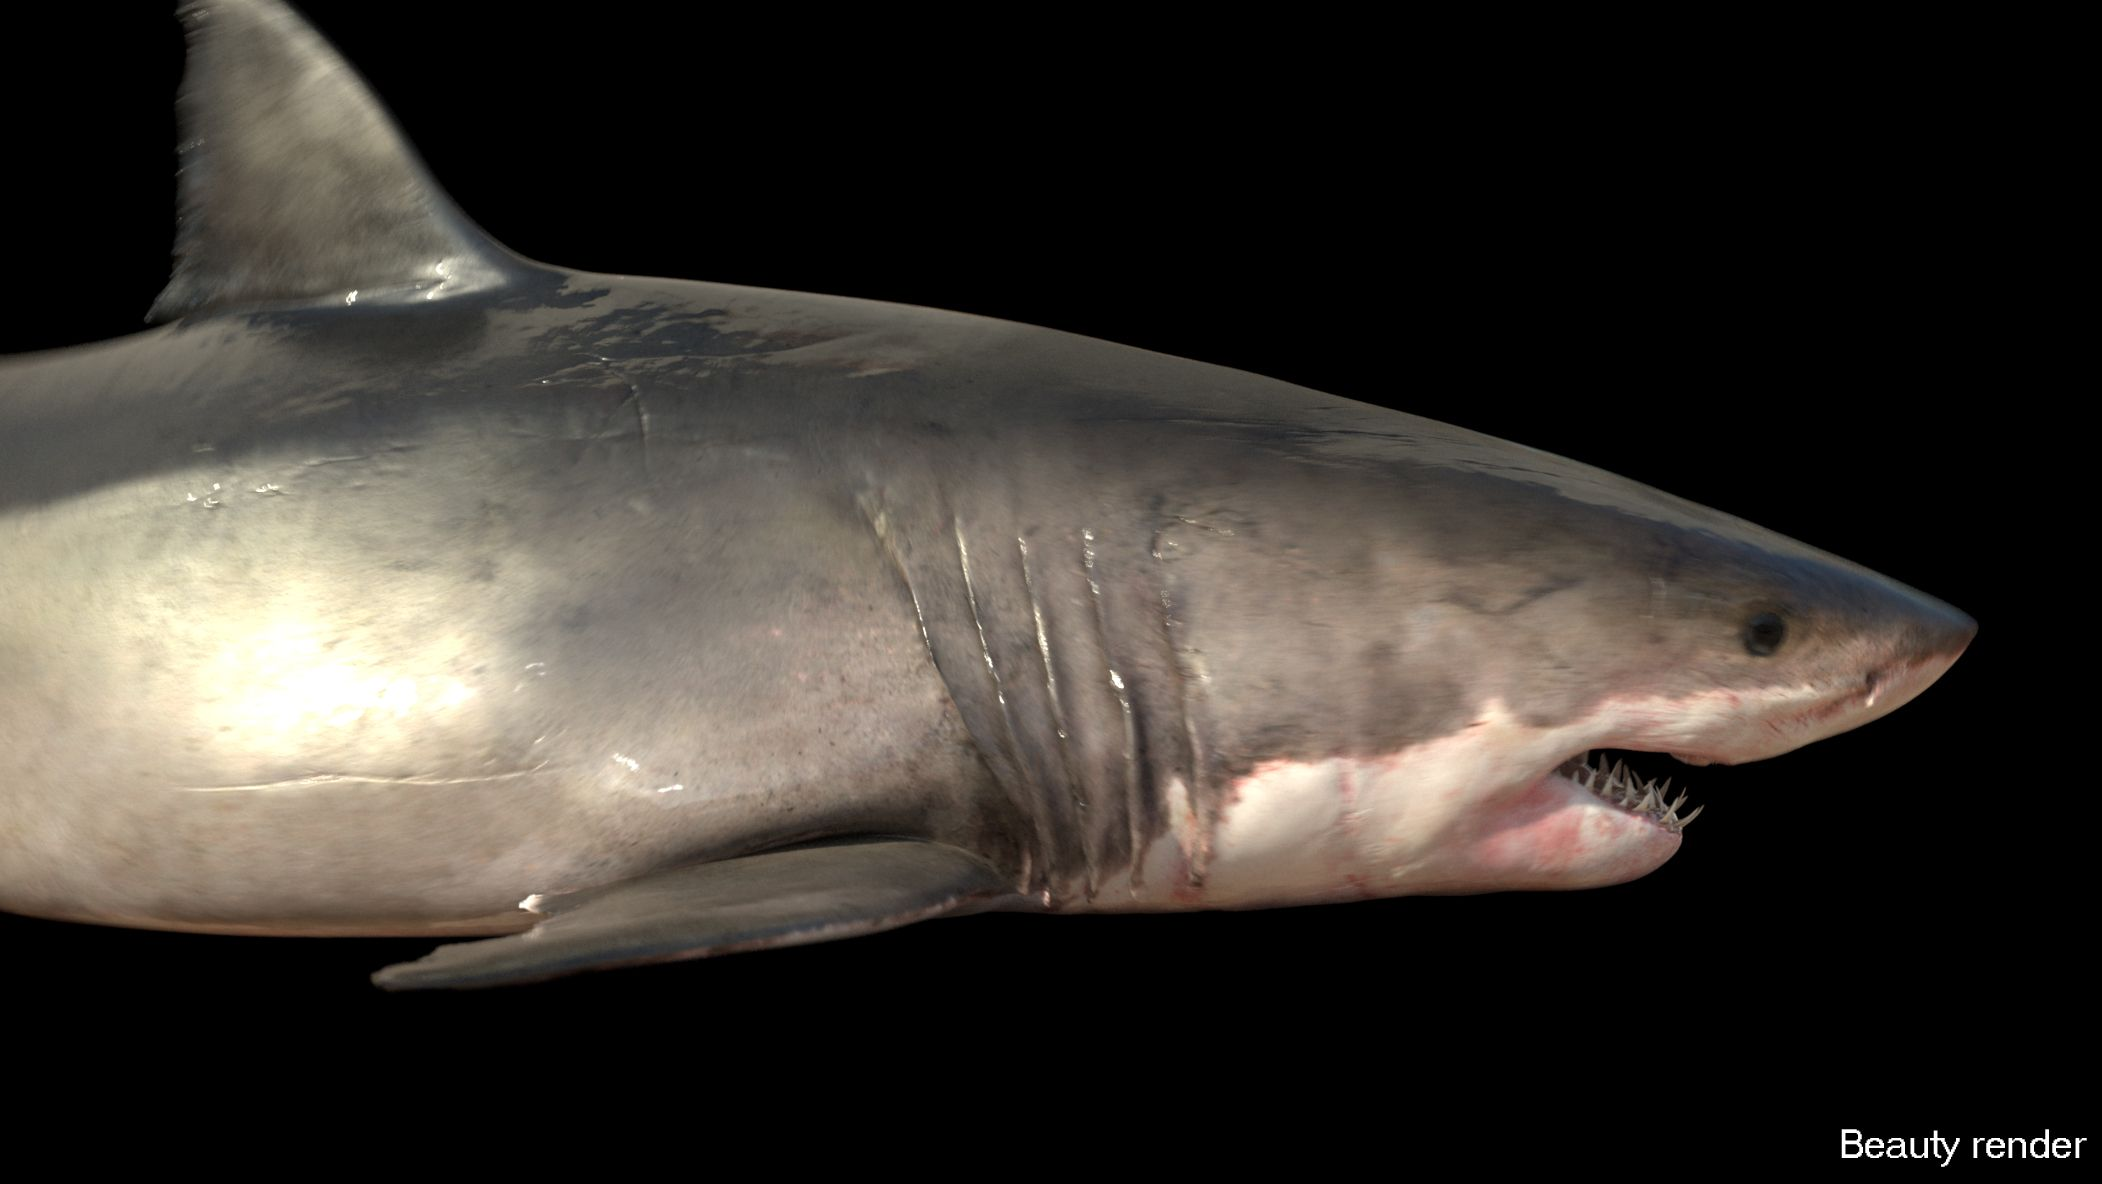 Sand tiger shark information amp pictures of sand tiger sharks - A Brief Chronology Of The Key Stages Swedish Vfx Studio Ilp Went Through To Produce The Epic Shark On Raft Scene In The Oscar Nominated Film Kon Tiki